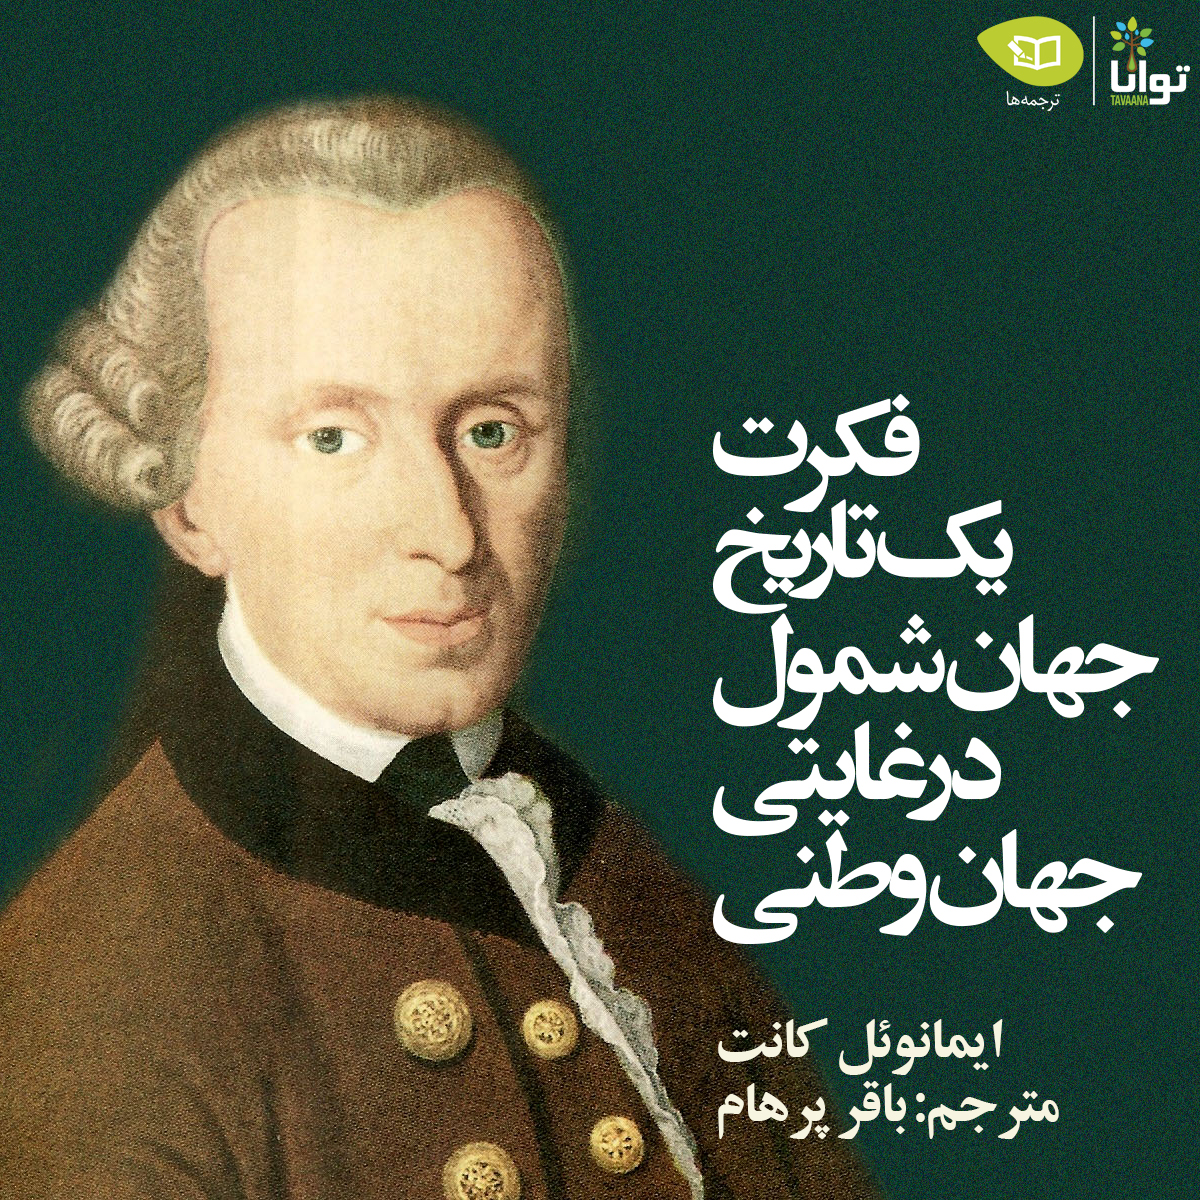 immanuel kant and the ethics of (you can find an even briefer summary of kant's ethics here) kant's deontological ethics 1 kant and hume the german philosopher immanuel kant (1724-1804), called by many the greatest of modern philosophers, was the preeminent defender of deontological (duty) ethics.